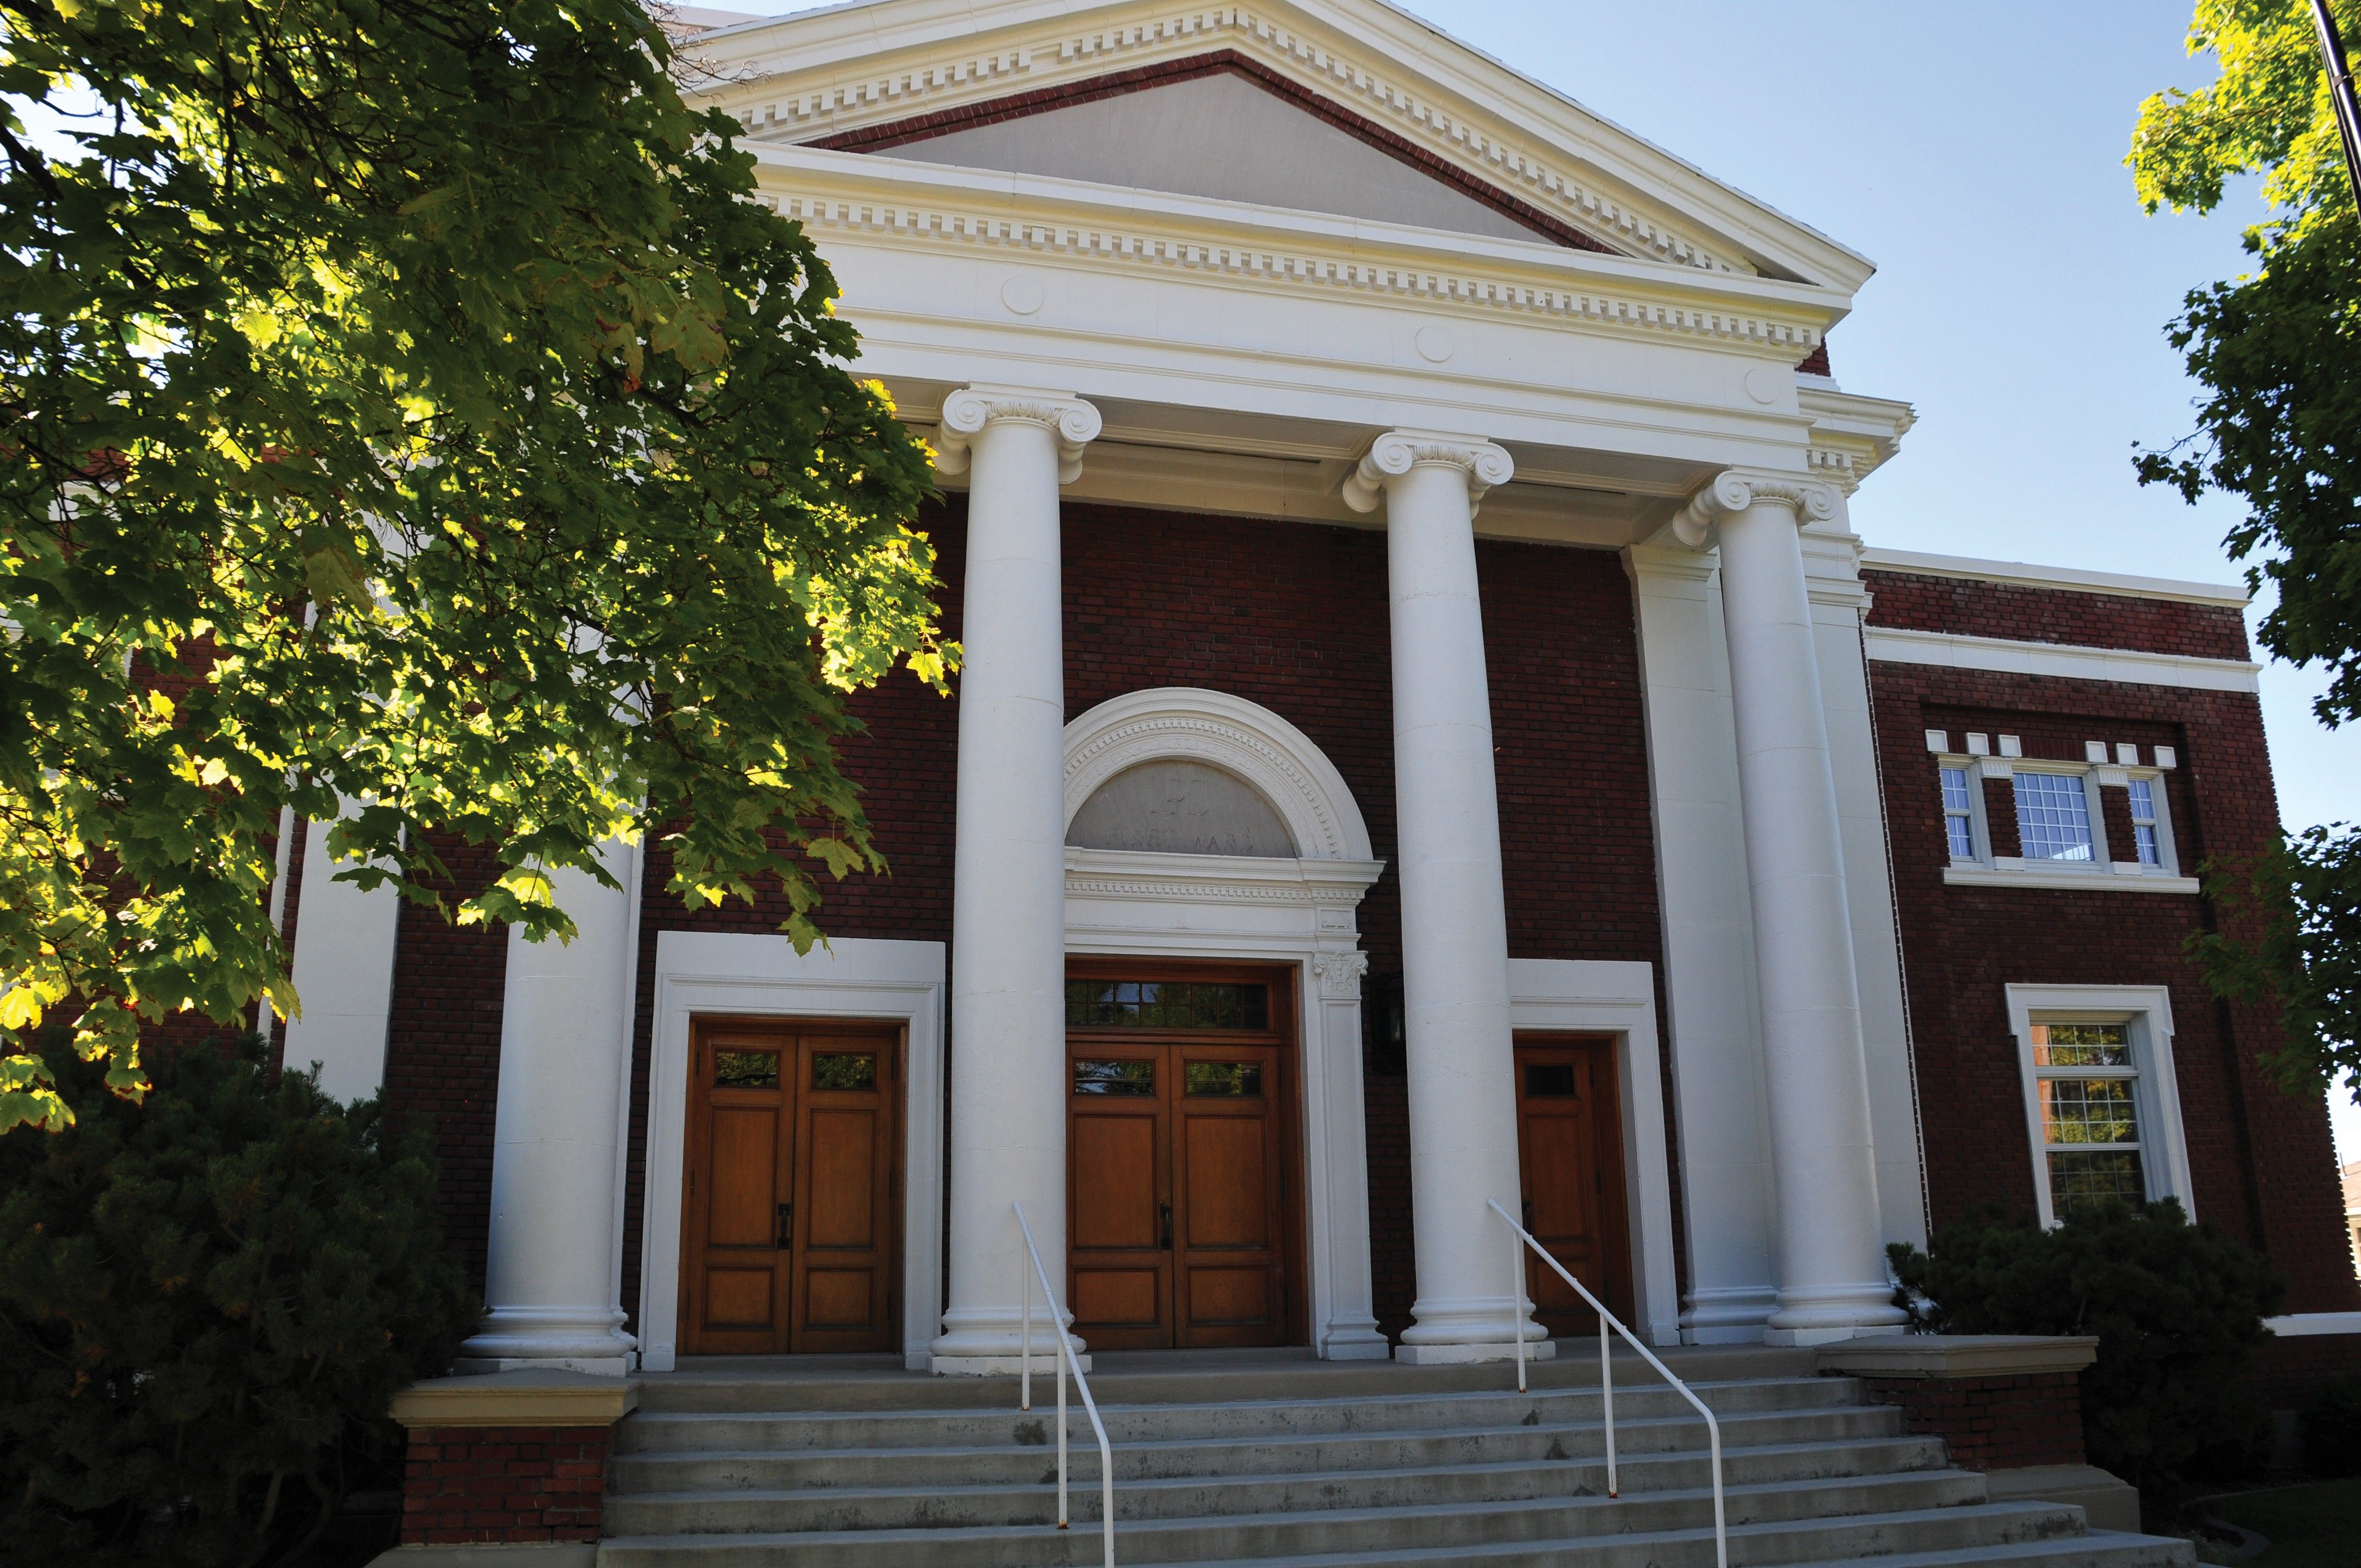 The outside of a chapel in Logan, Utah, showing brick, pillars, and stairs.